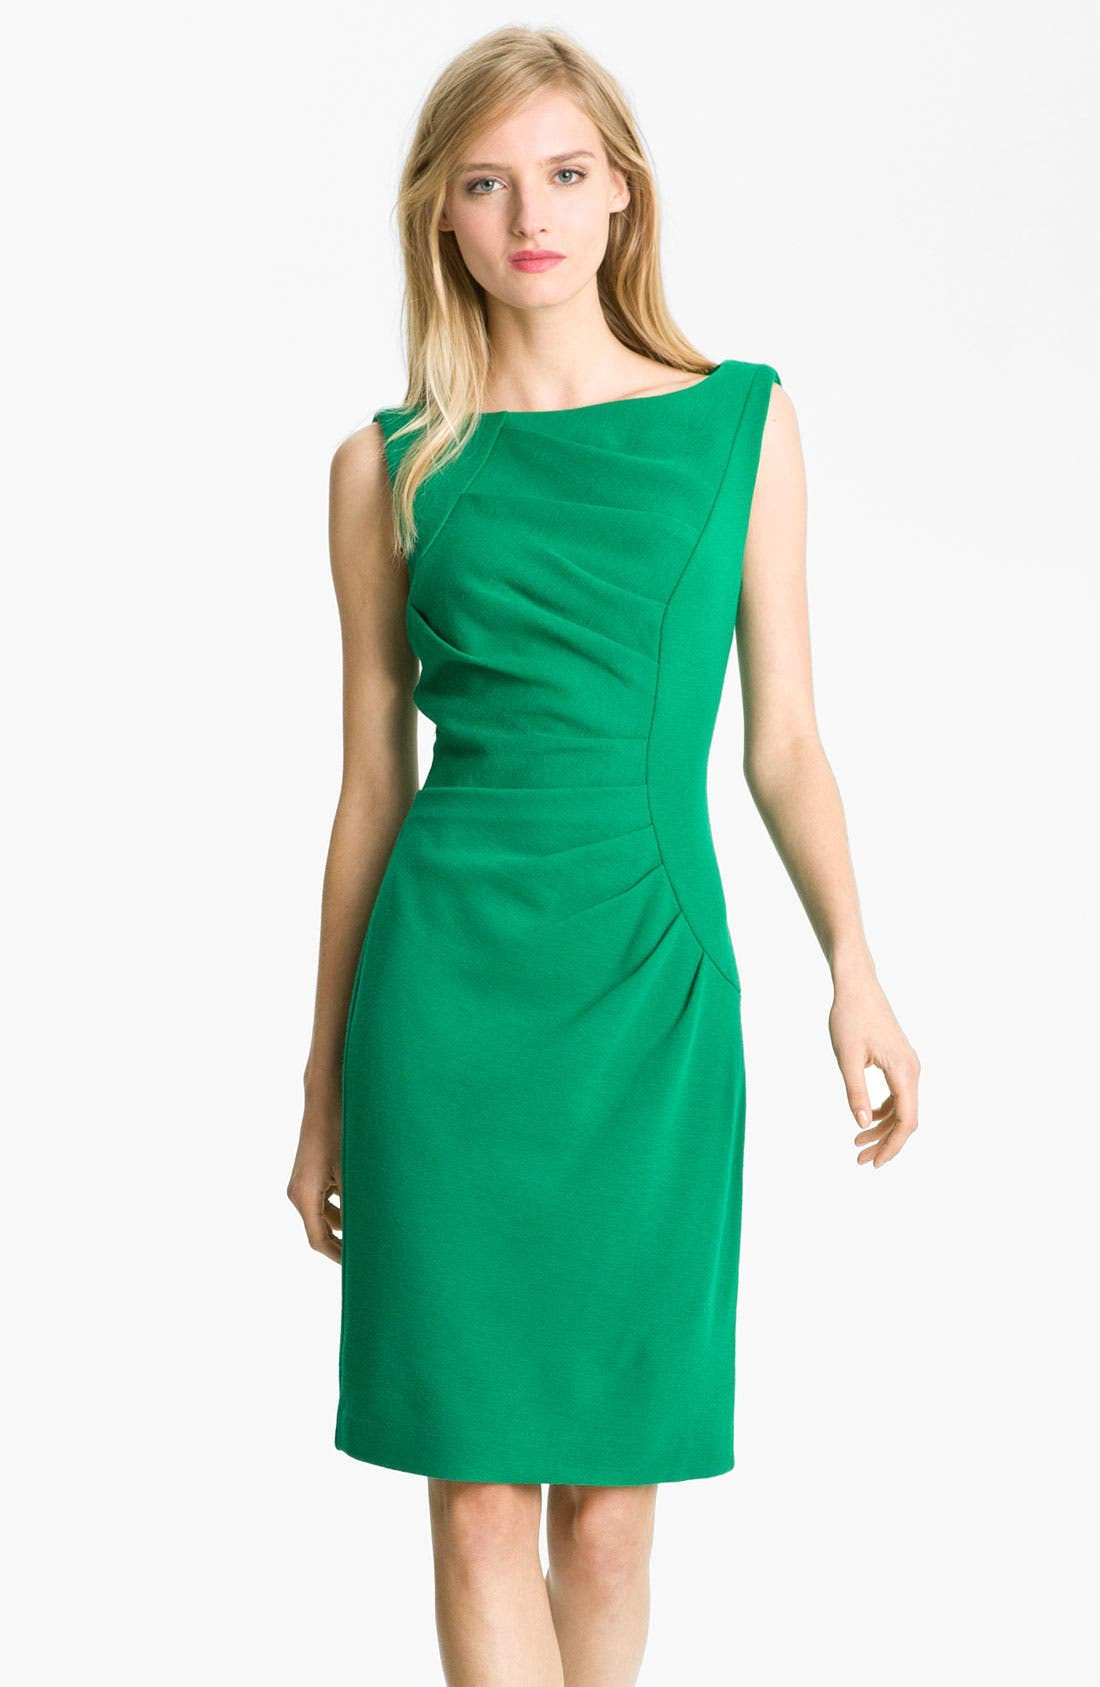 Alternate Image 1 Selected - Milly 'Tucked' Sheath Dress